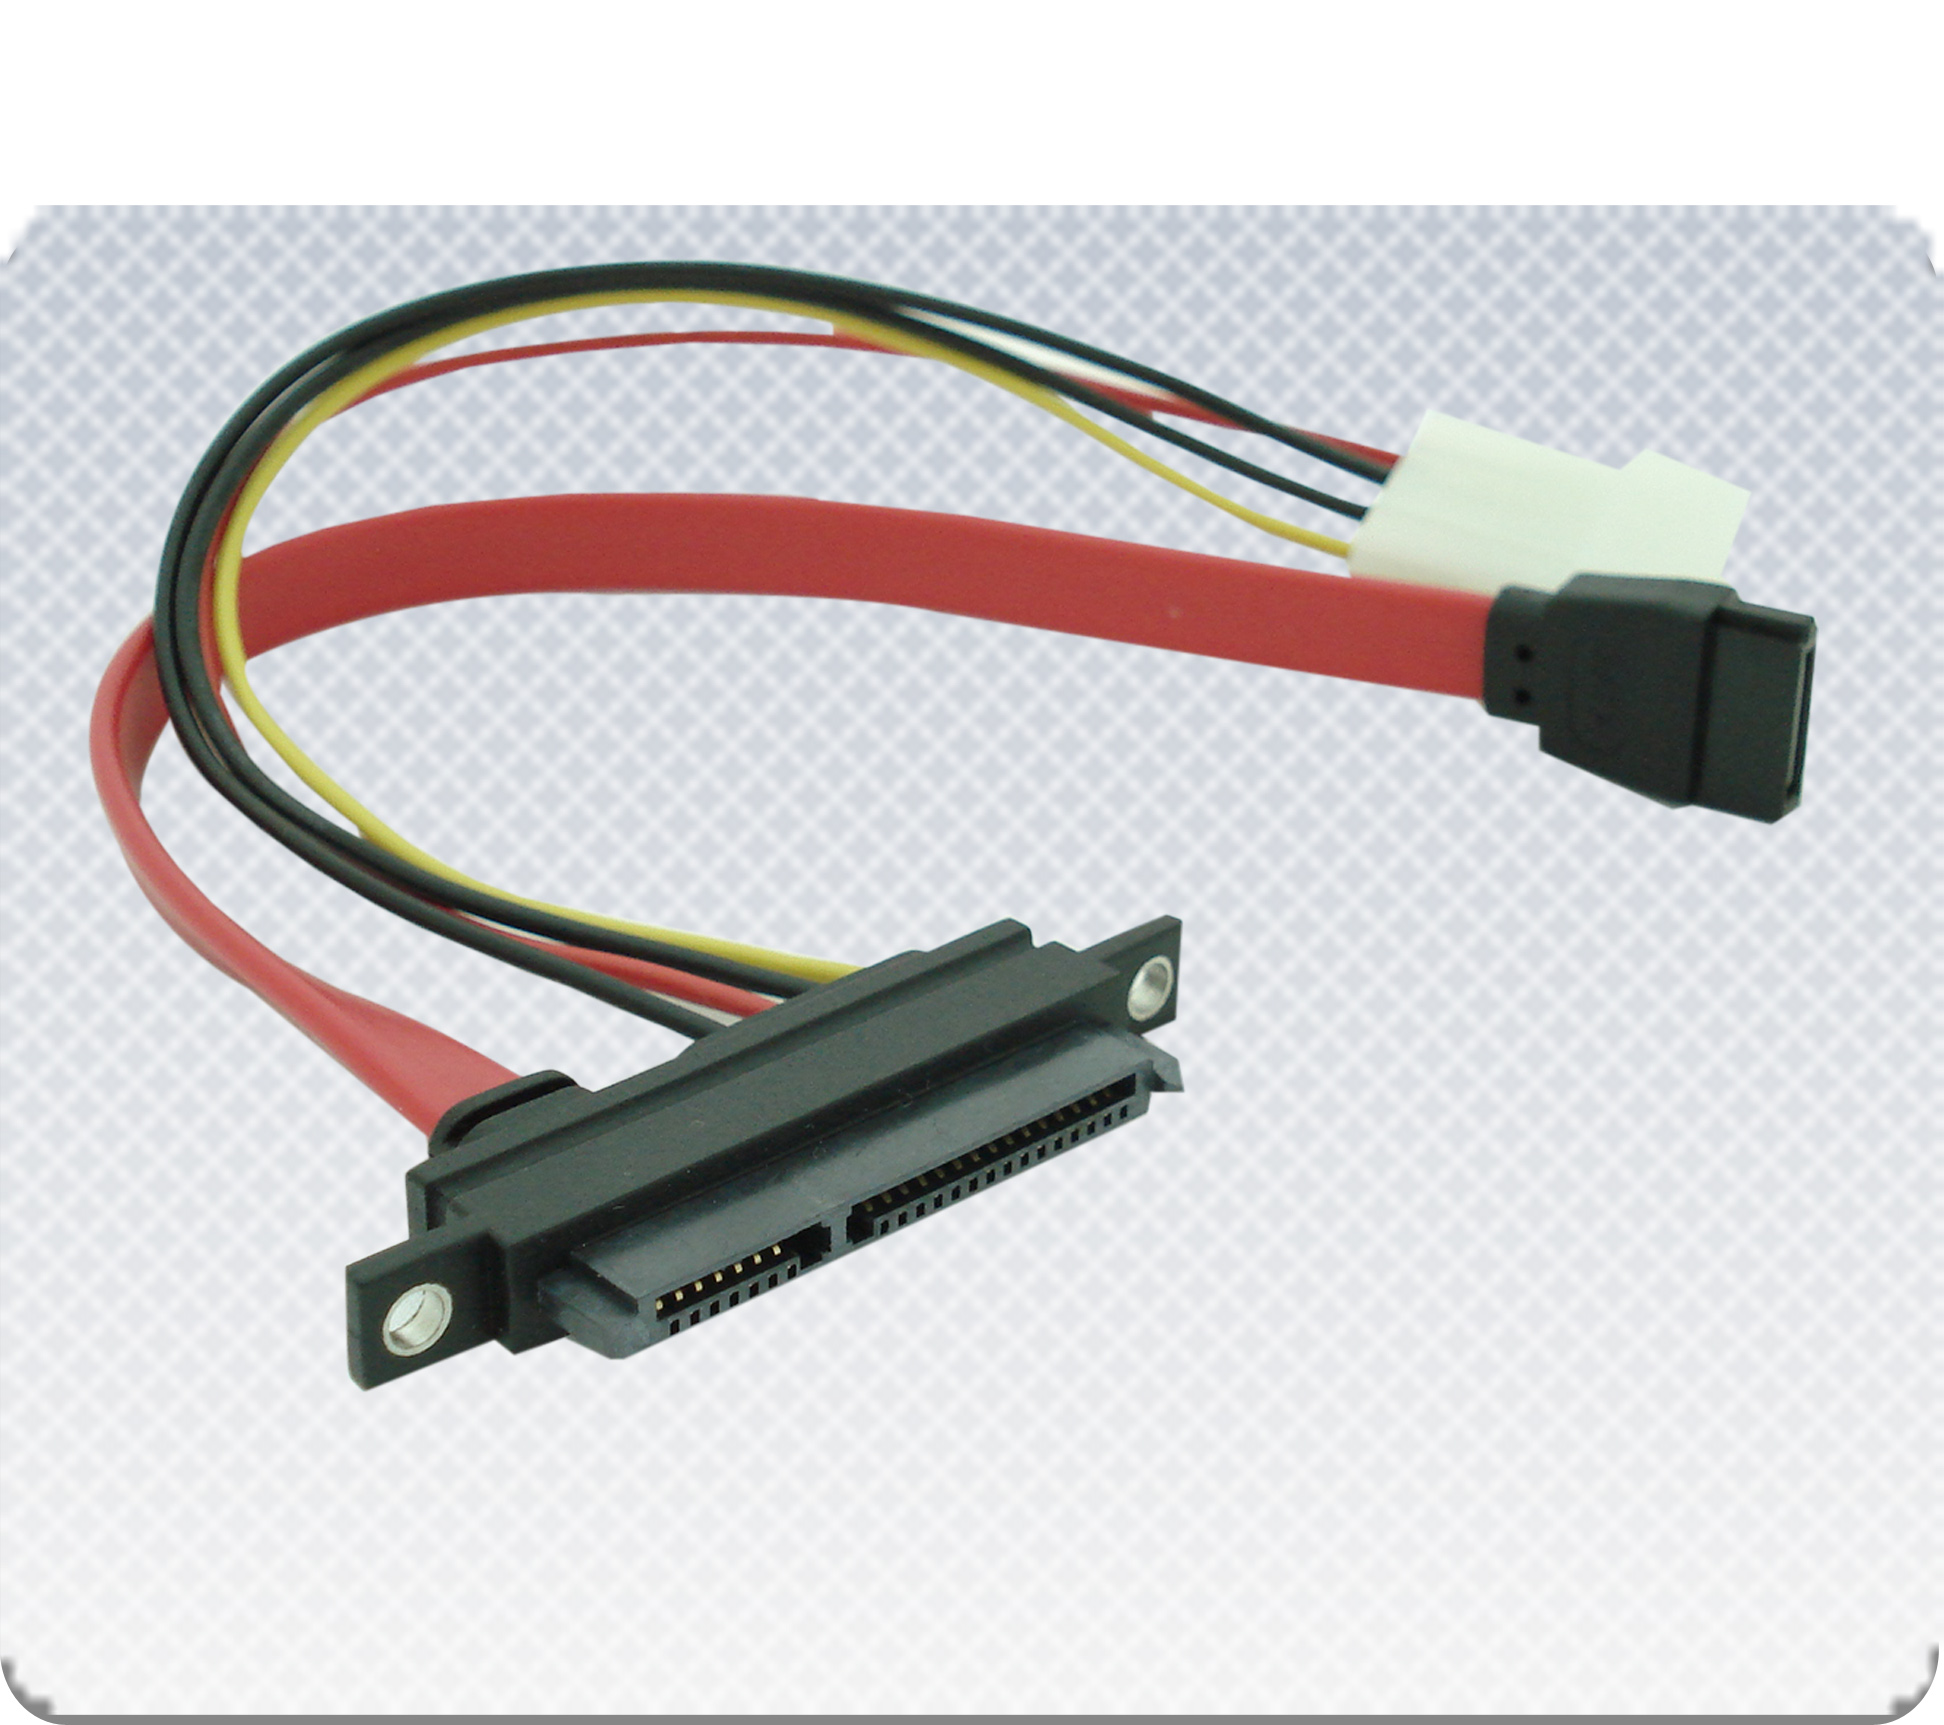 sata cable sata cable manufacturer supplier rh grandprotech com sata cable pins sata cable connection on motherboard